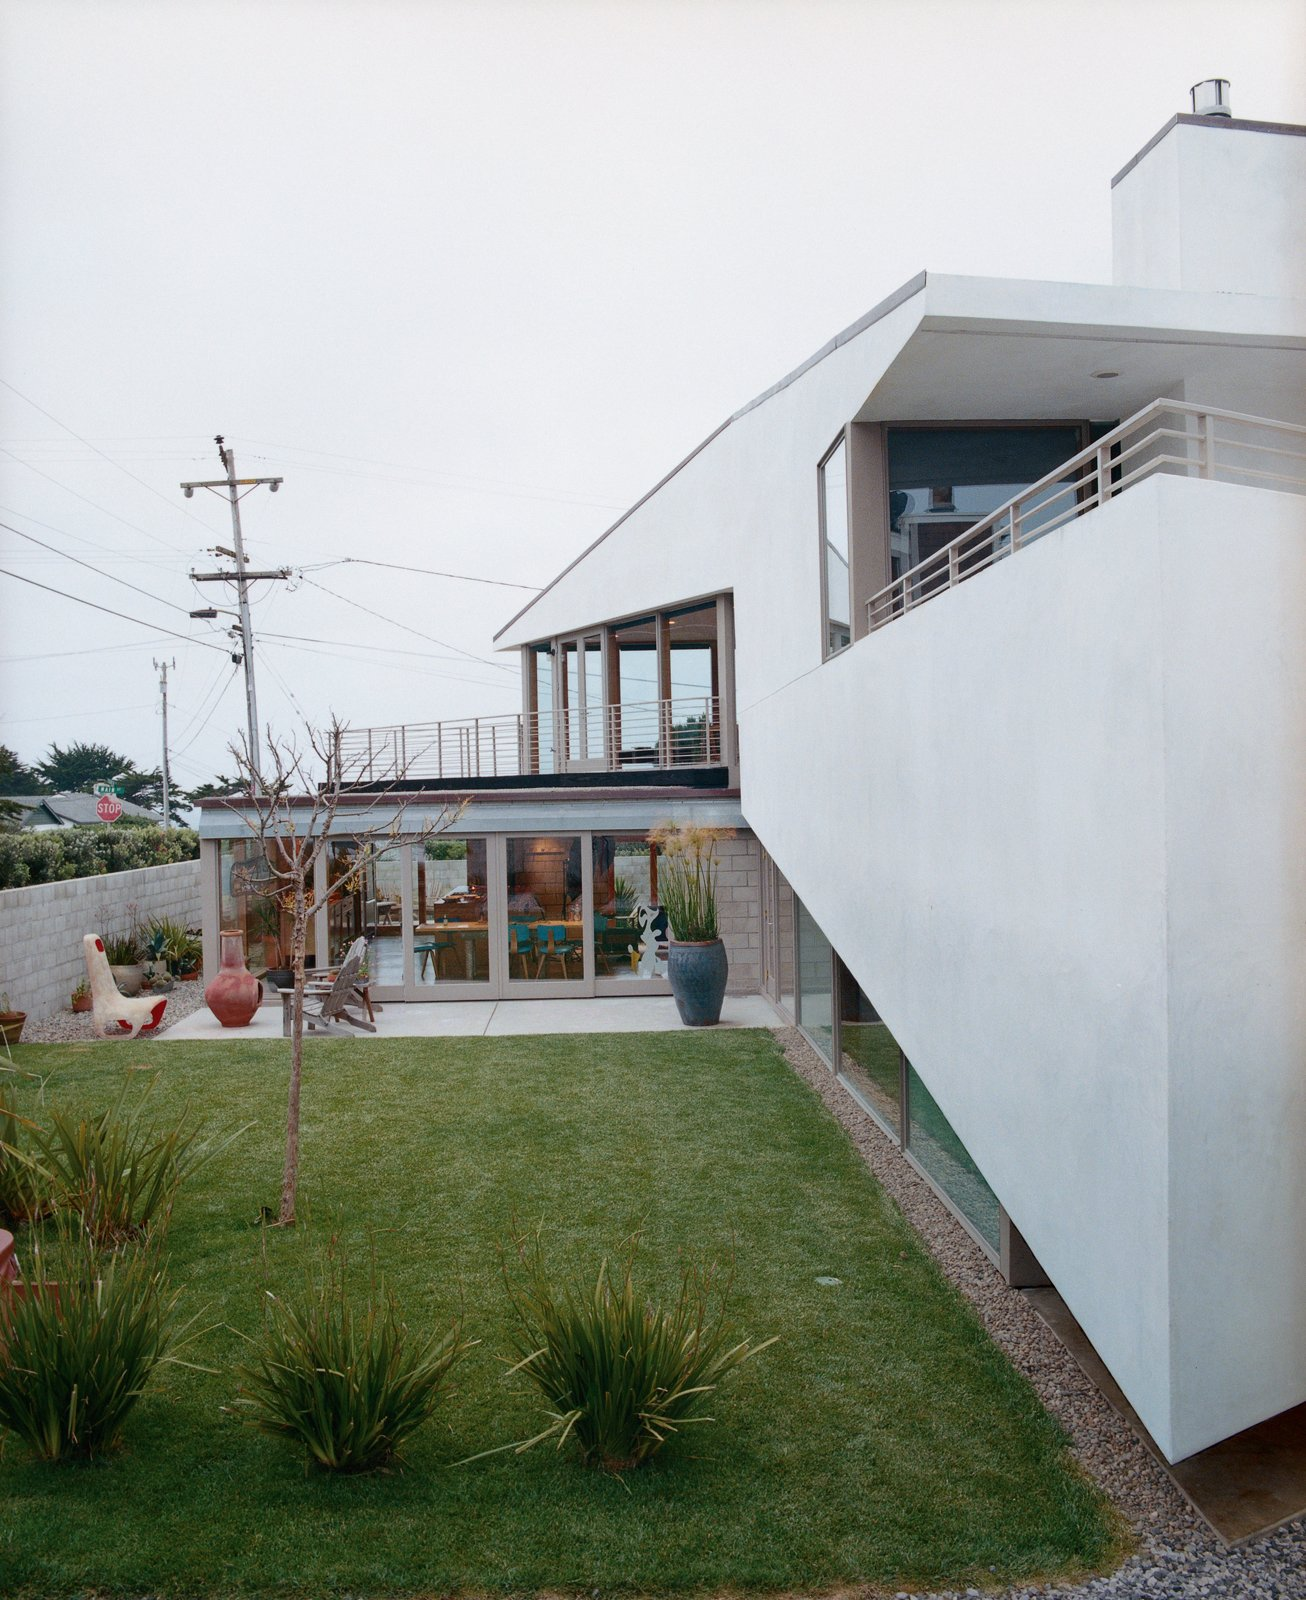 Grass, Back Yard, and Exterior In Montara, California, architect Michael Maltzan designed a home for, his sister and   brother-in-law. From certain vantage points, the home's unique angles result in M.C. Escher–like optical illusions.  Photos from The Full Montara